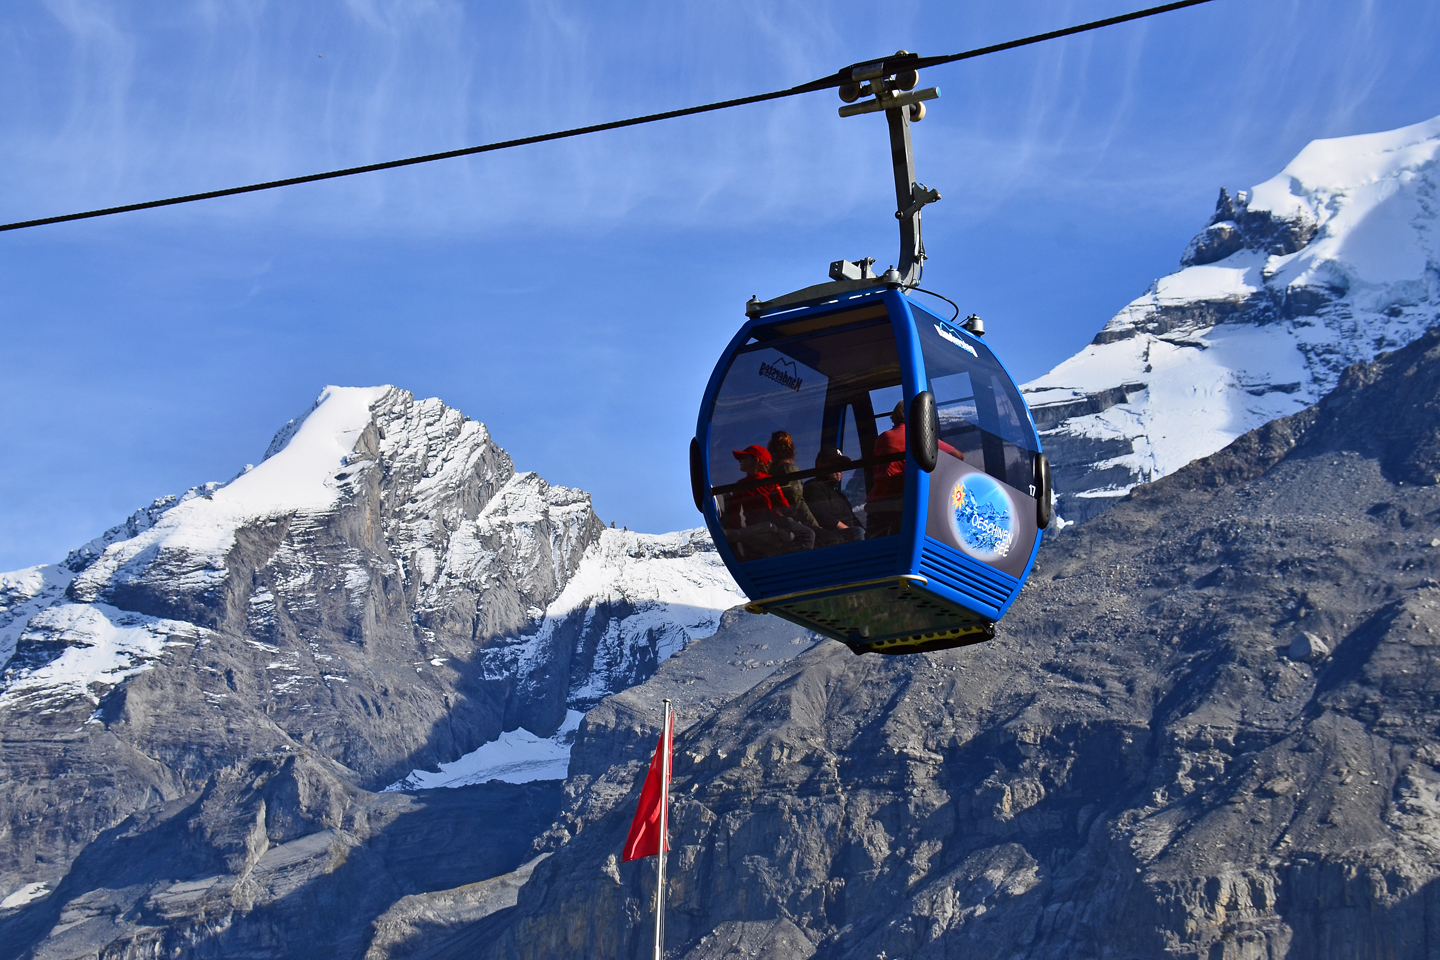 The Oeschinesee gondola